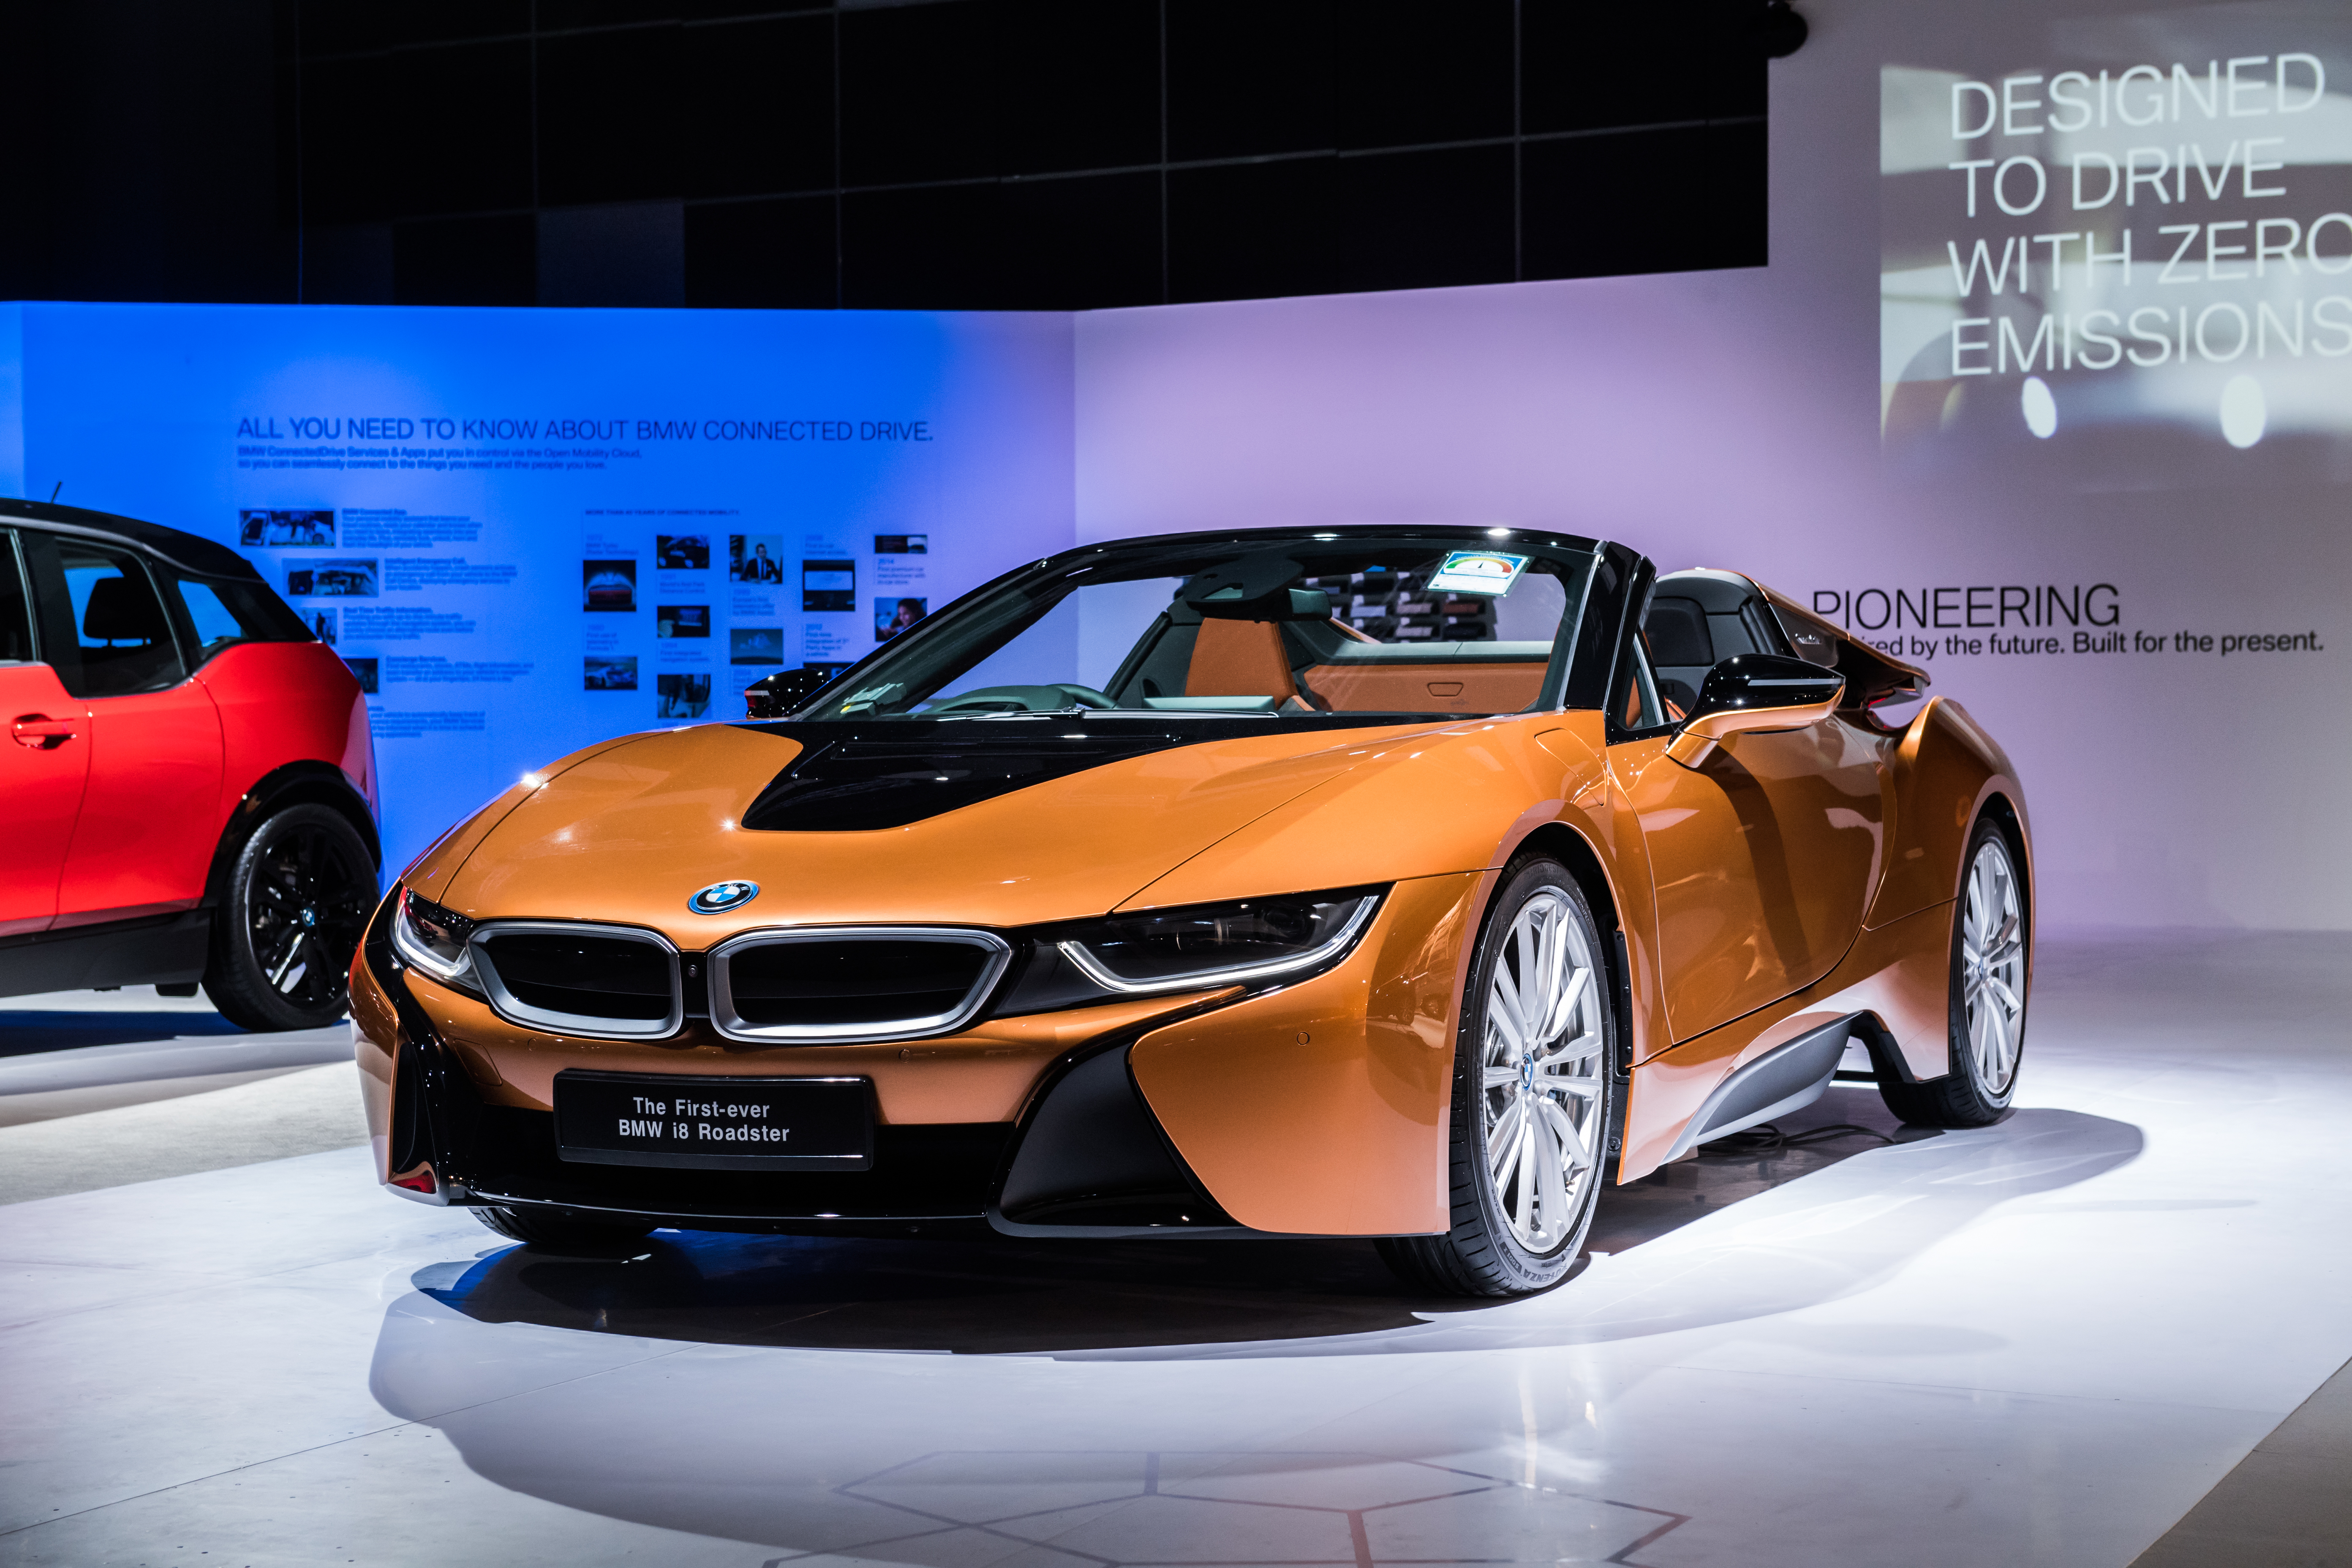 The First Ever Bmw I8 Roadster Now Available In Singapore Press